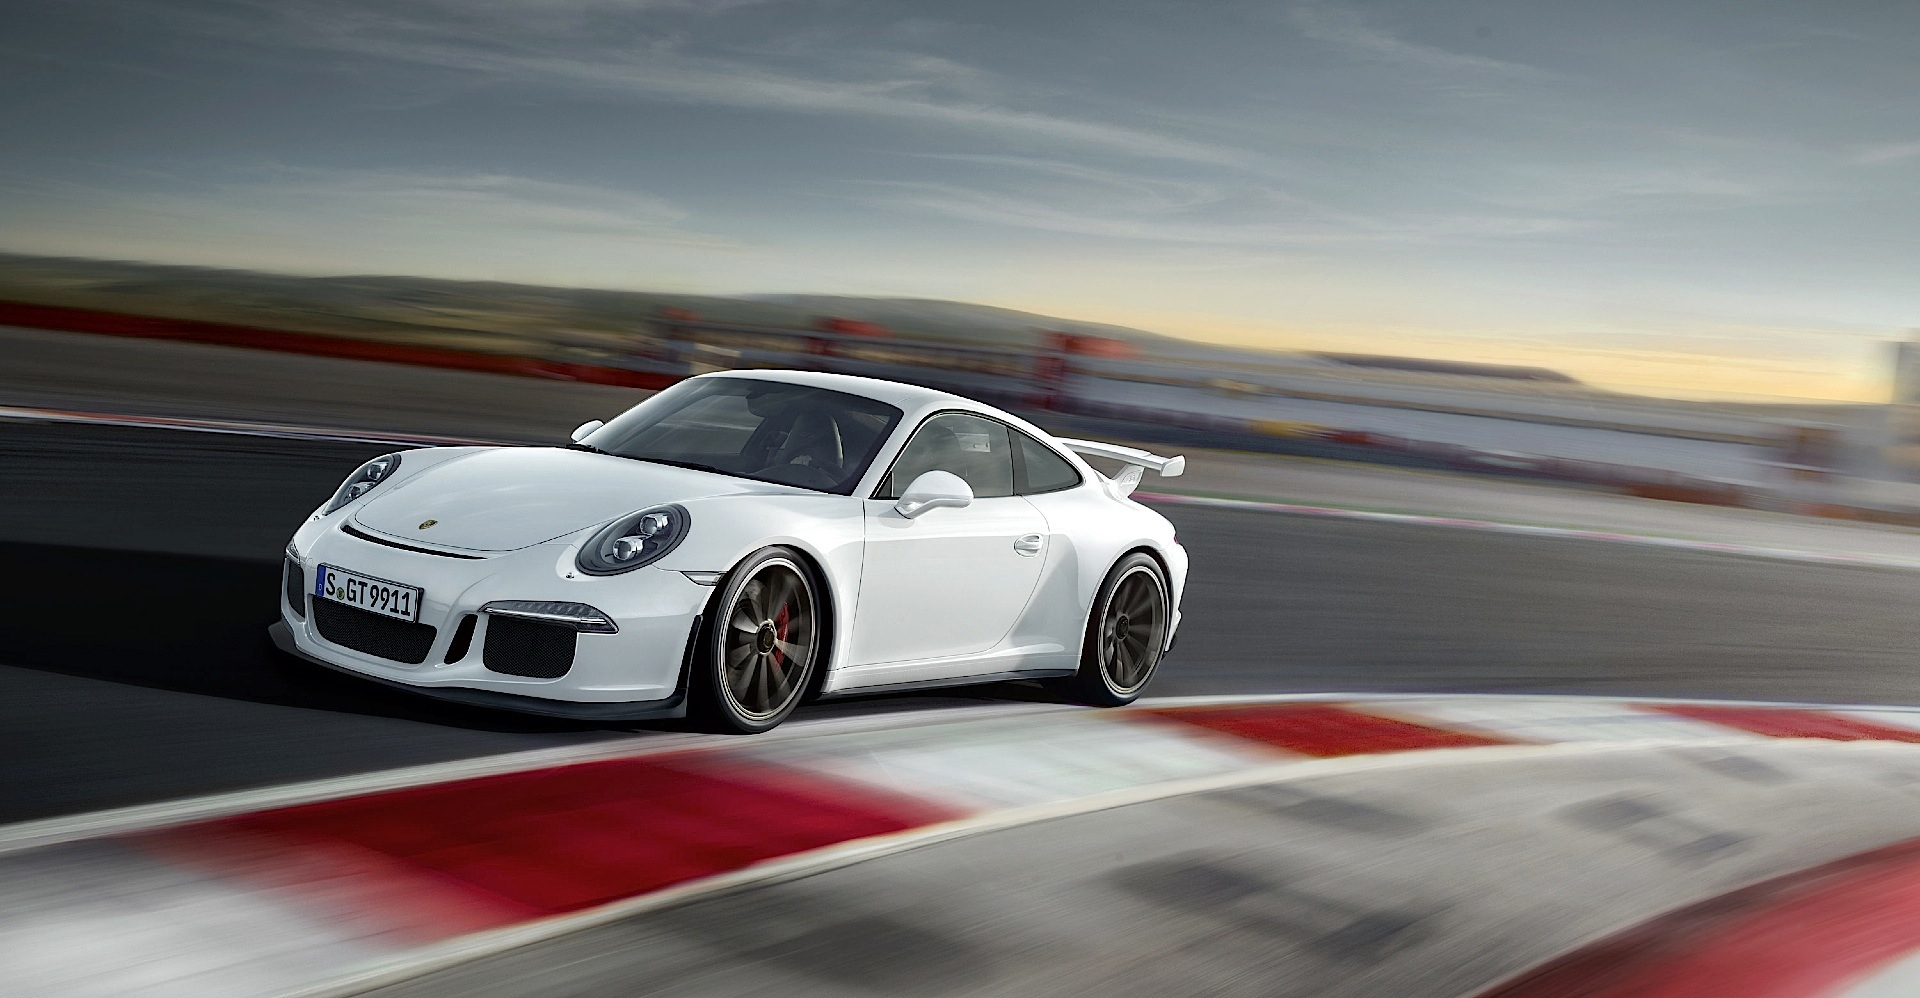 porsche 911 gt3 specs 2013 2014 2015 2016 2017 autoevolution. Black Bedroom Furniture Sets. Home Design Ideas